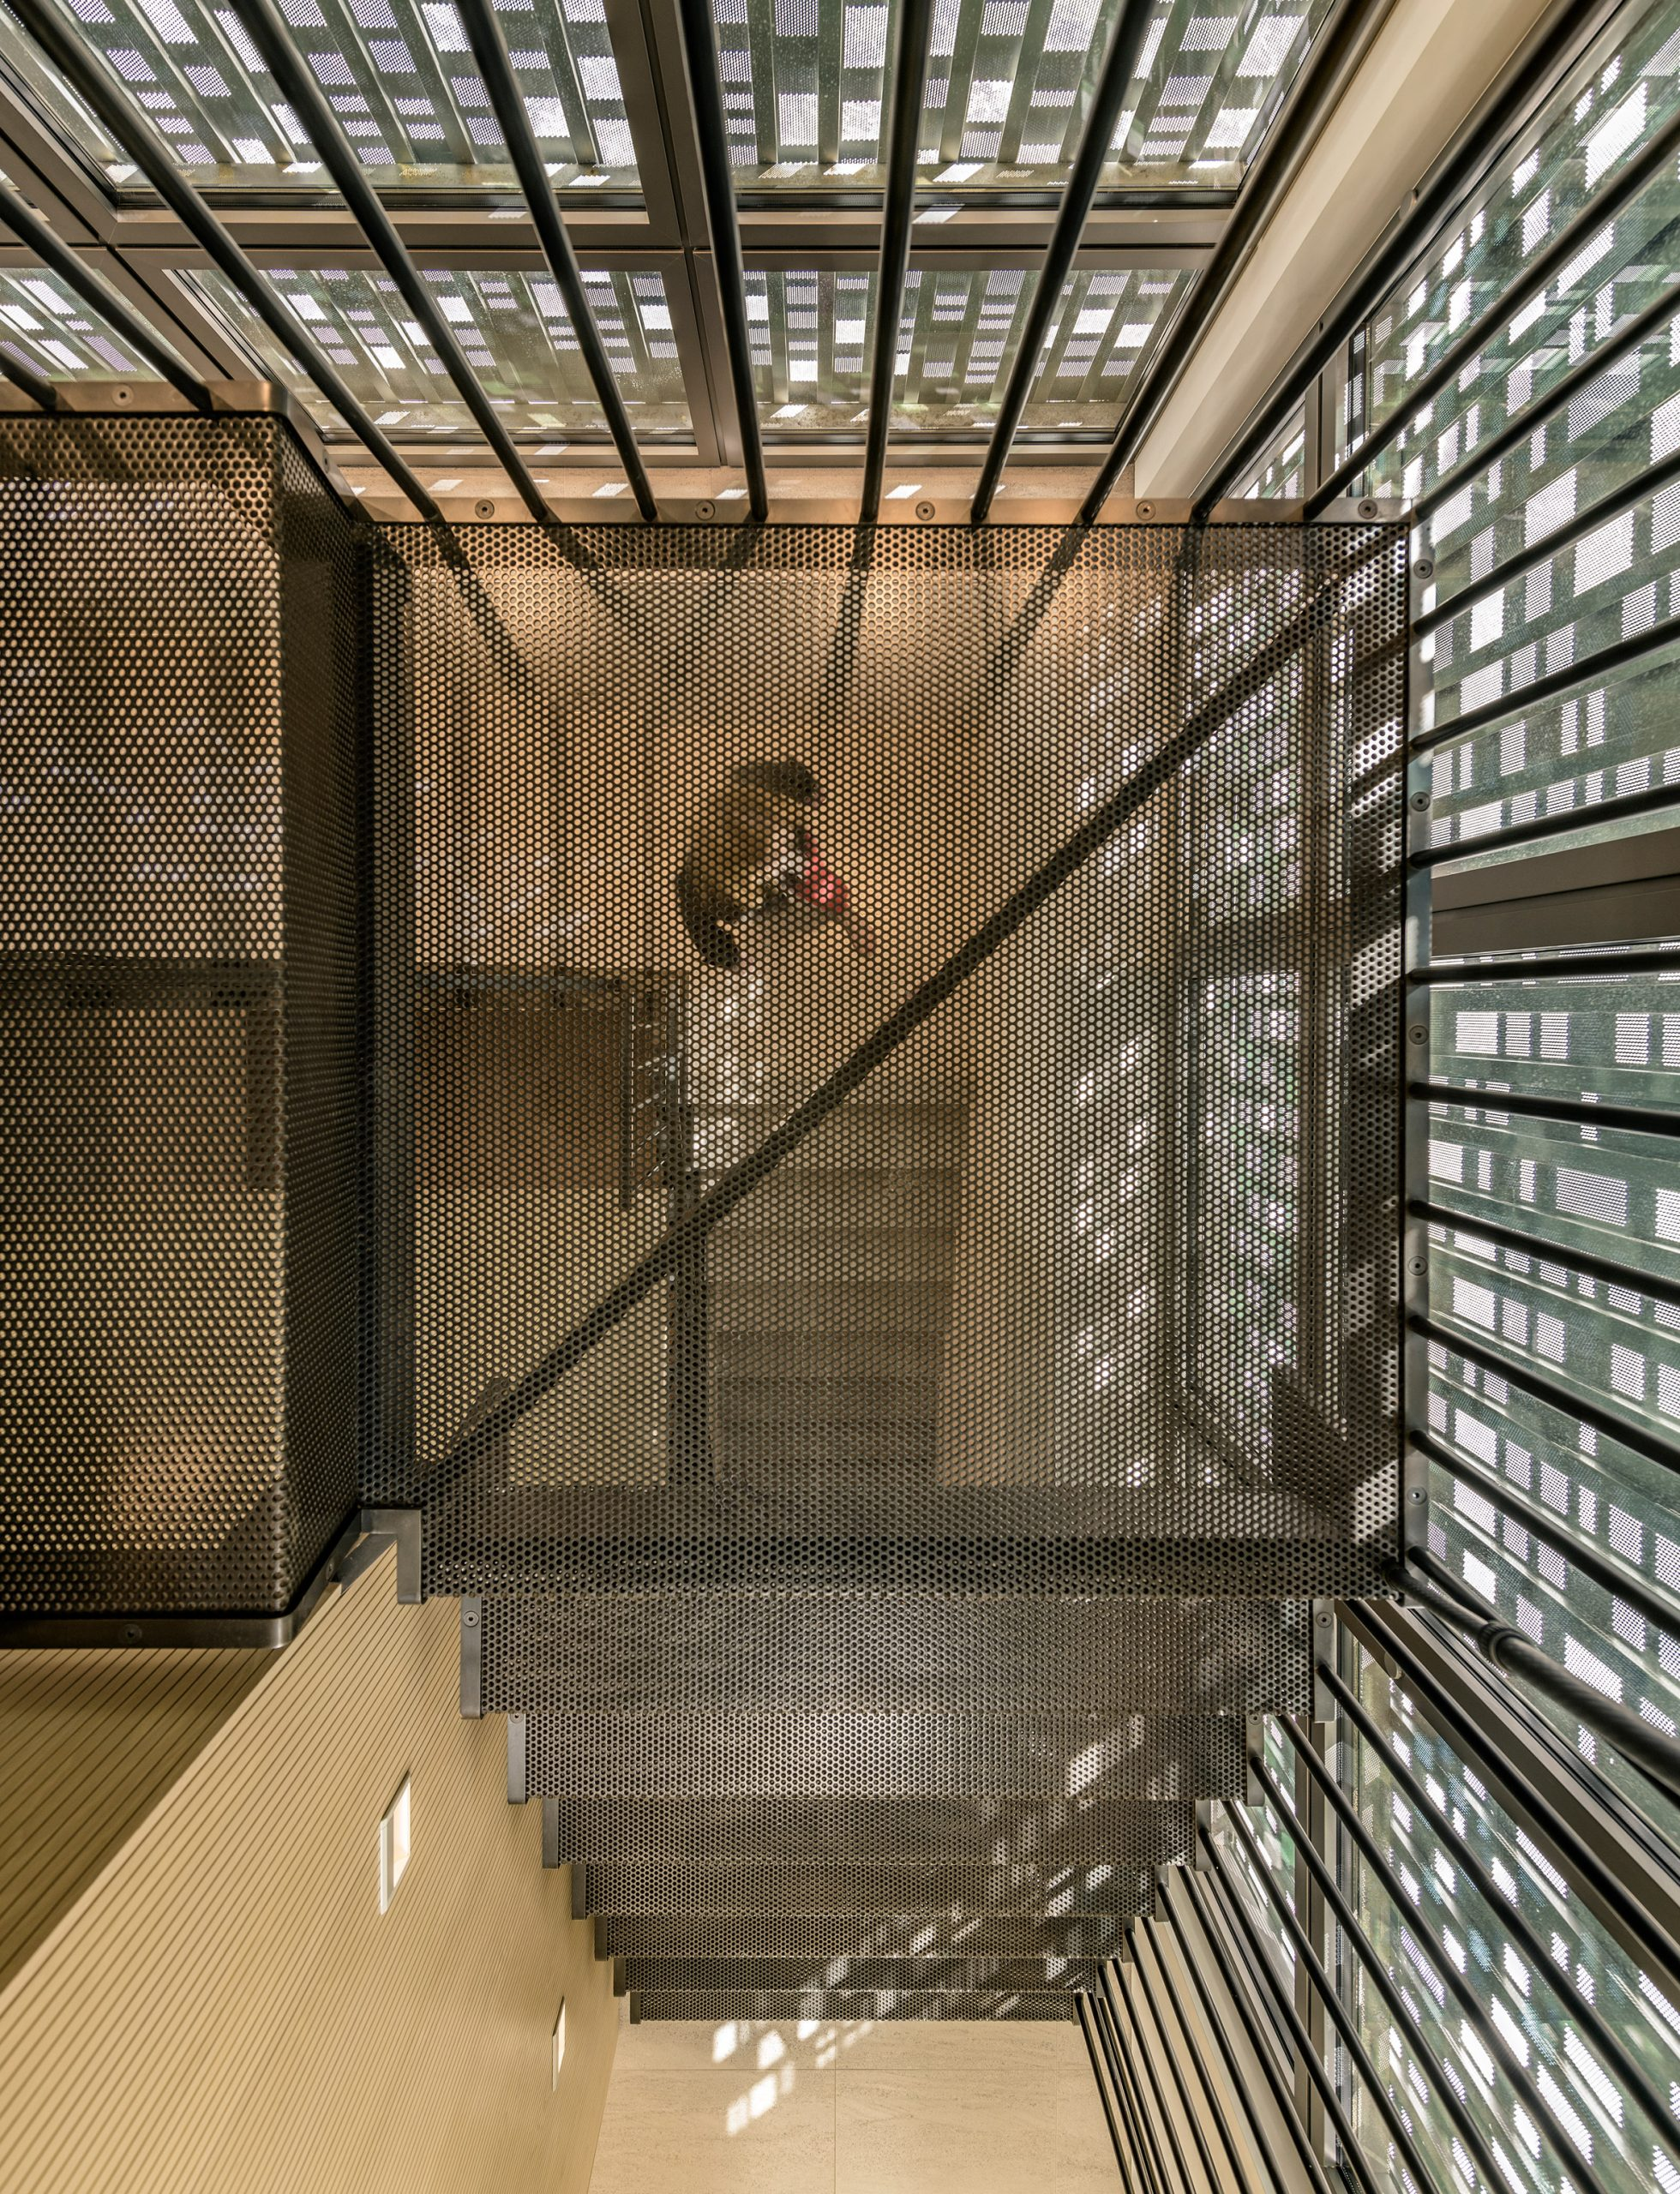 Steel mesh staircase in Music Box by CCY Architects